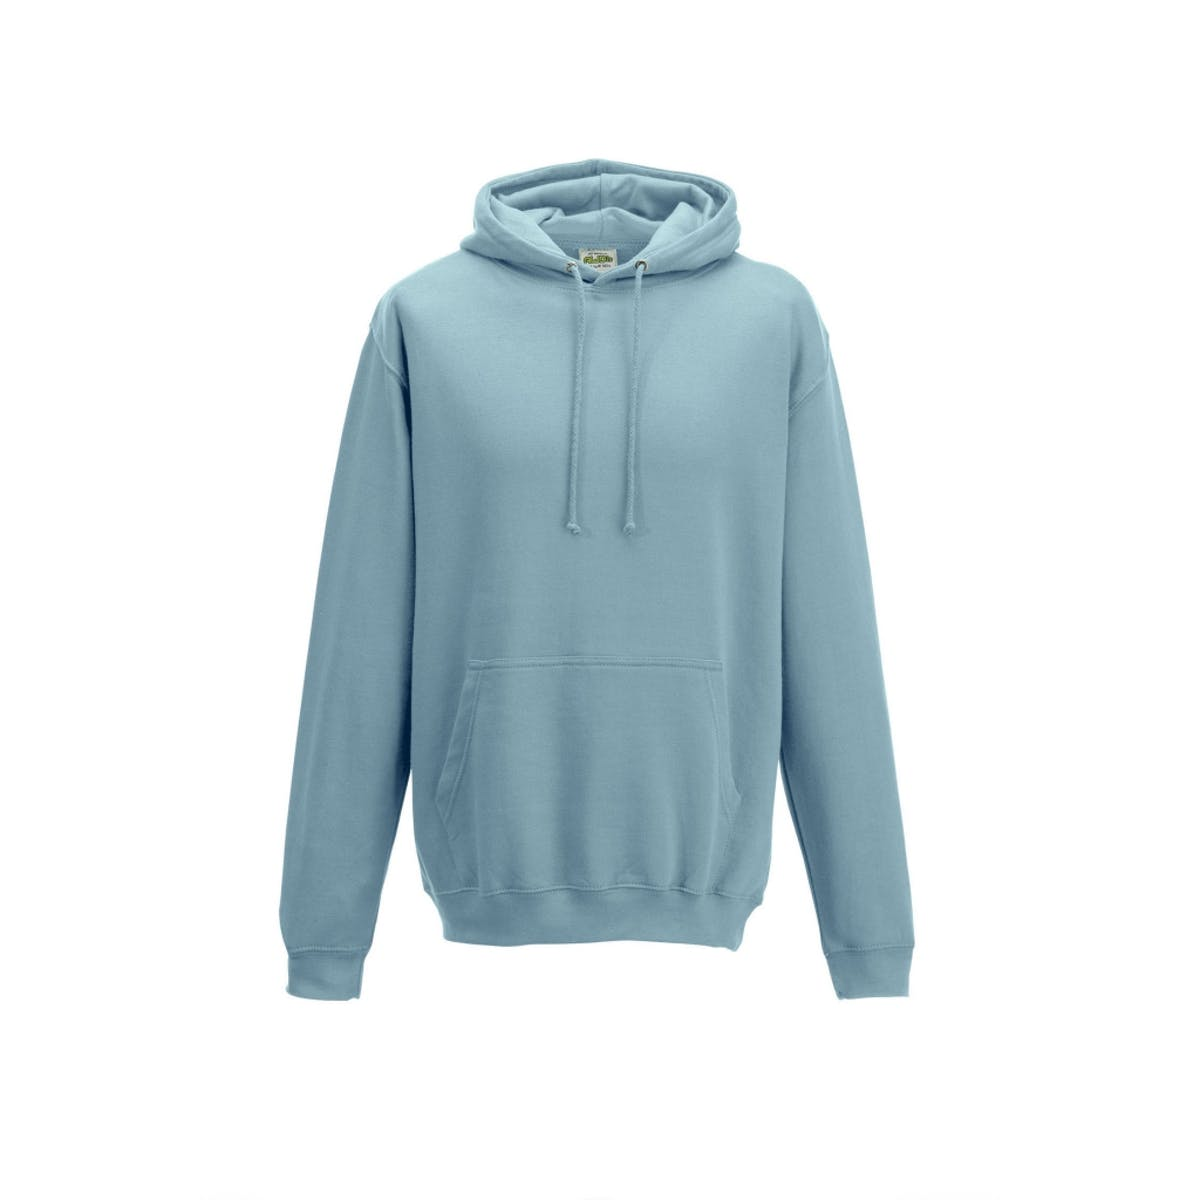 sky blue college hoodies